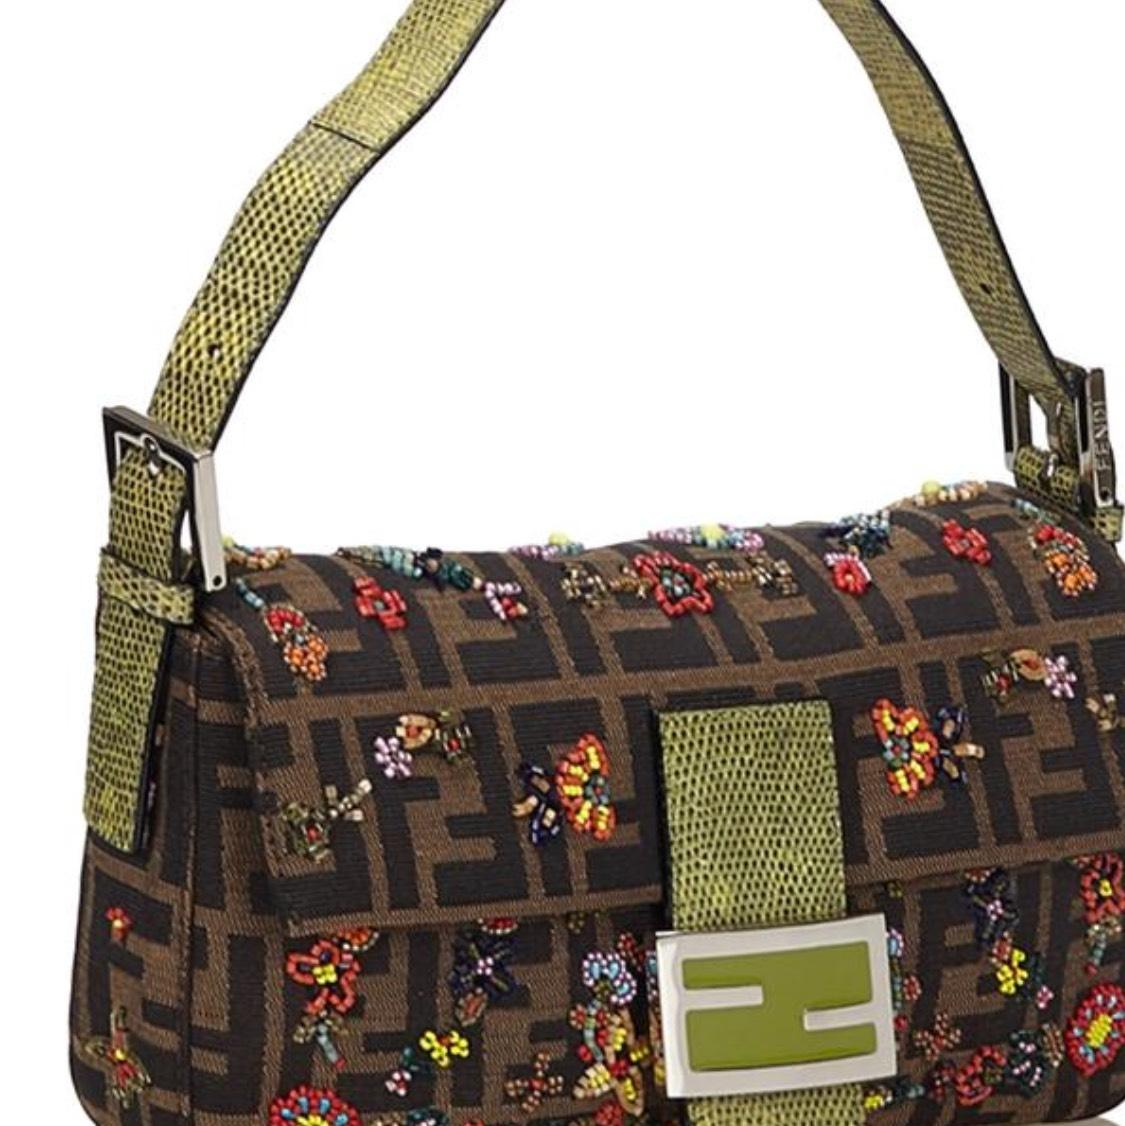 99d78aba9518 spain fendi bag monograms embroidery 85b60 3052b